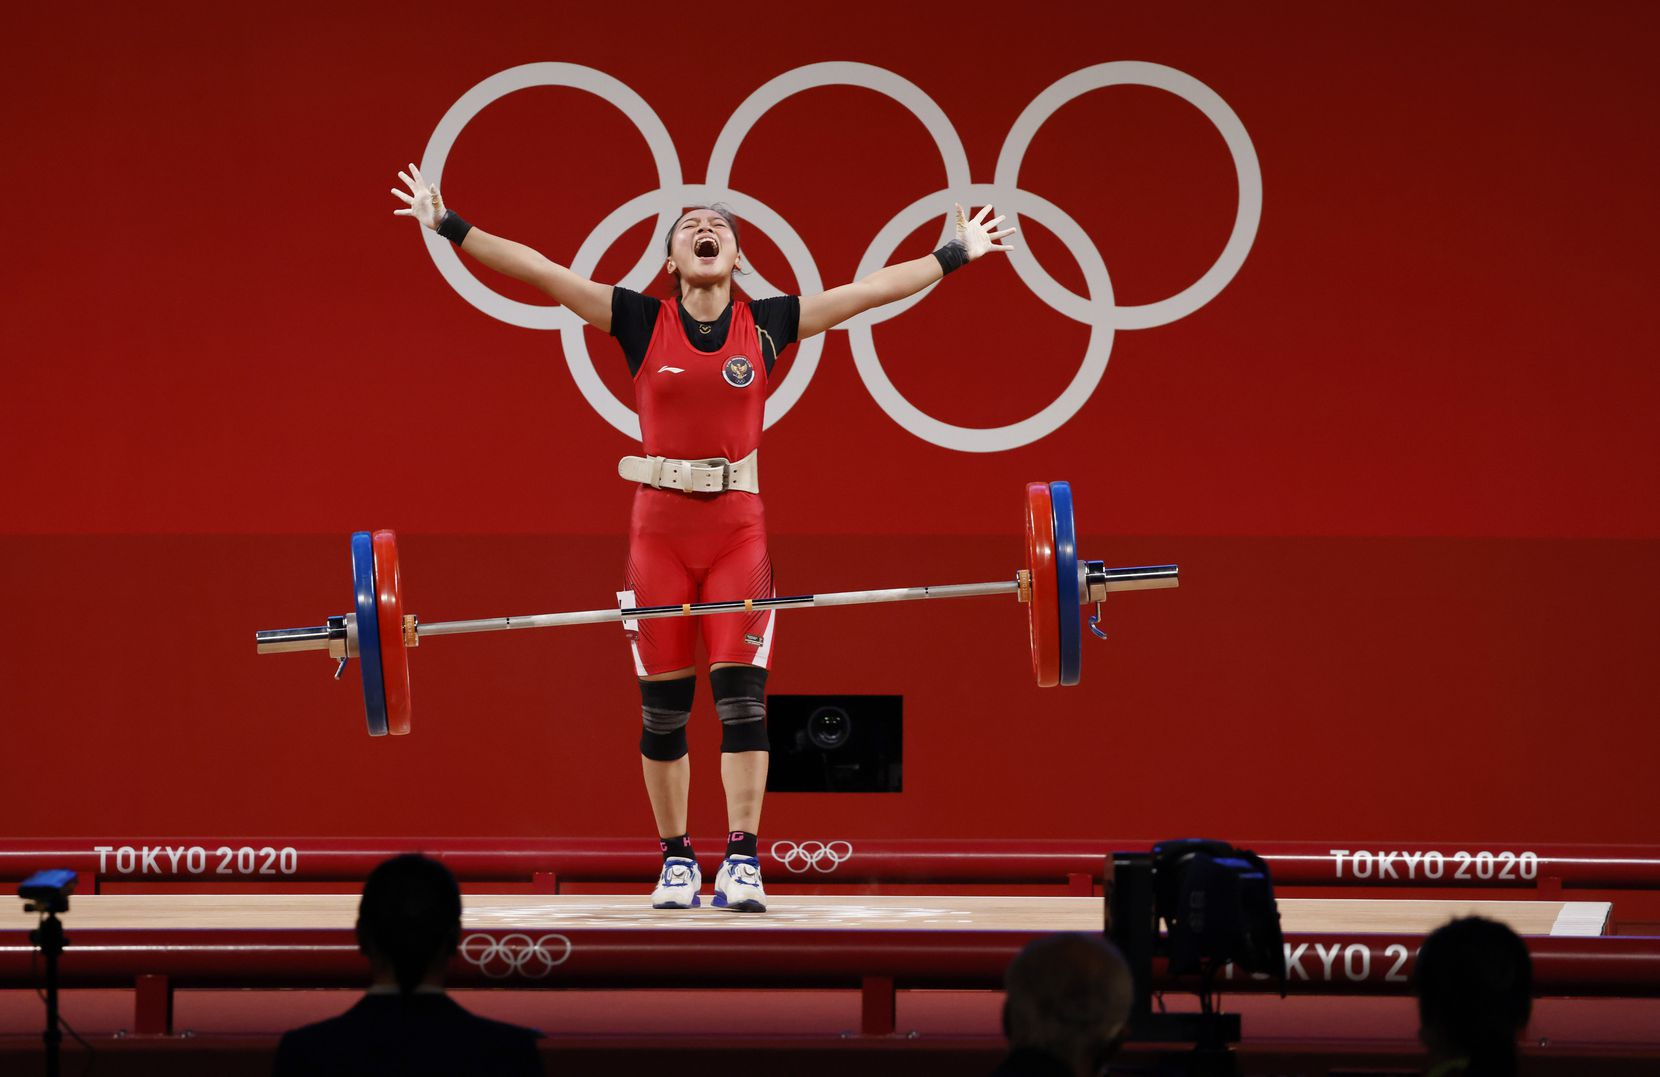 Indonesia's Windy Cantika Aisah celebrates after a successful clean and jerk of 110 kg in her third attempt in the clean and jerk round during the women's 49 kg weightlifting final during the postponed 2020 Tokyo Olympics at Tokyo International Forum on Saturday, July 24, 2021, in Tokyo, Japan. Aisah won a bronze medal in this event. (Vernon Bryant/The Dallas Morning News)